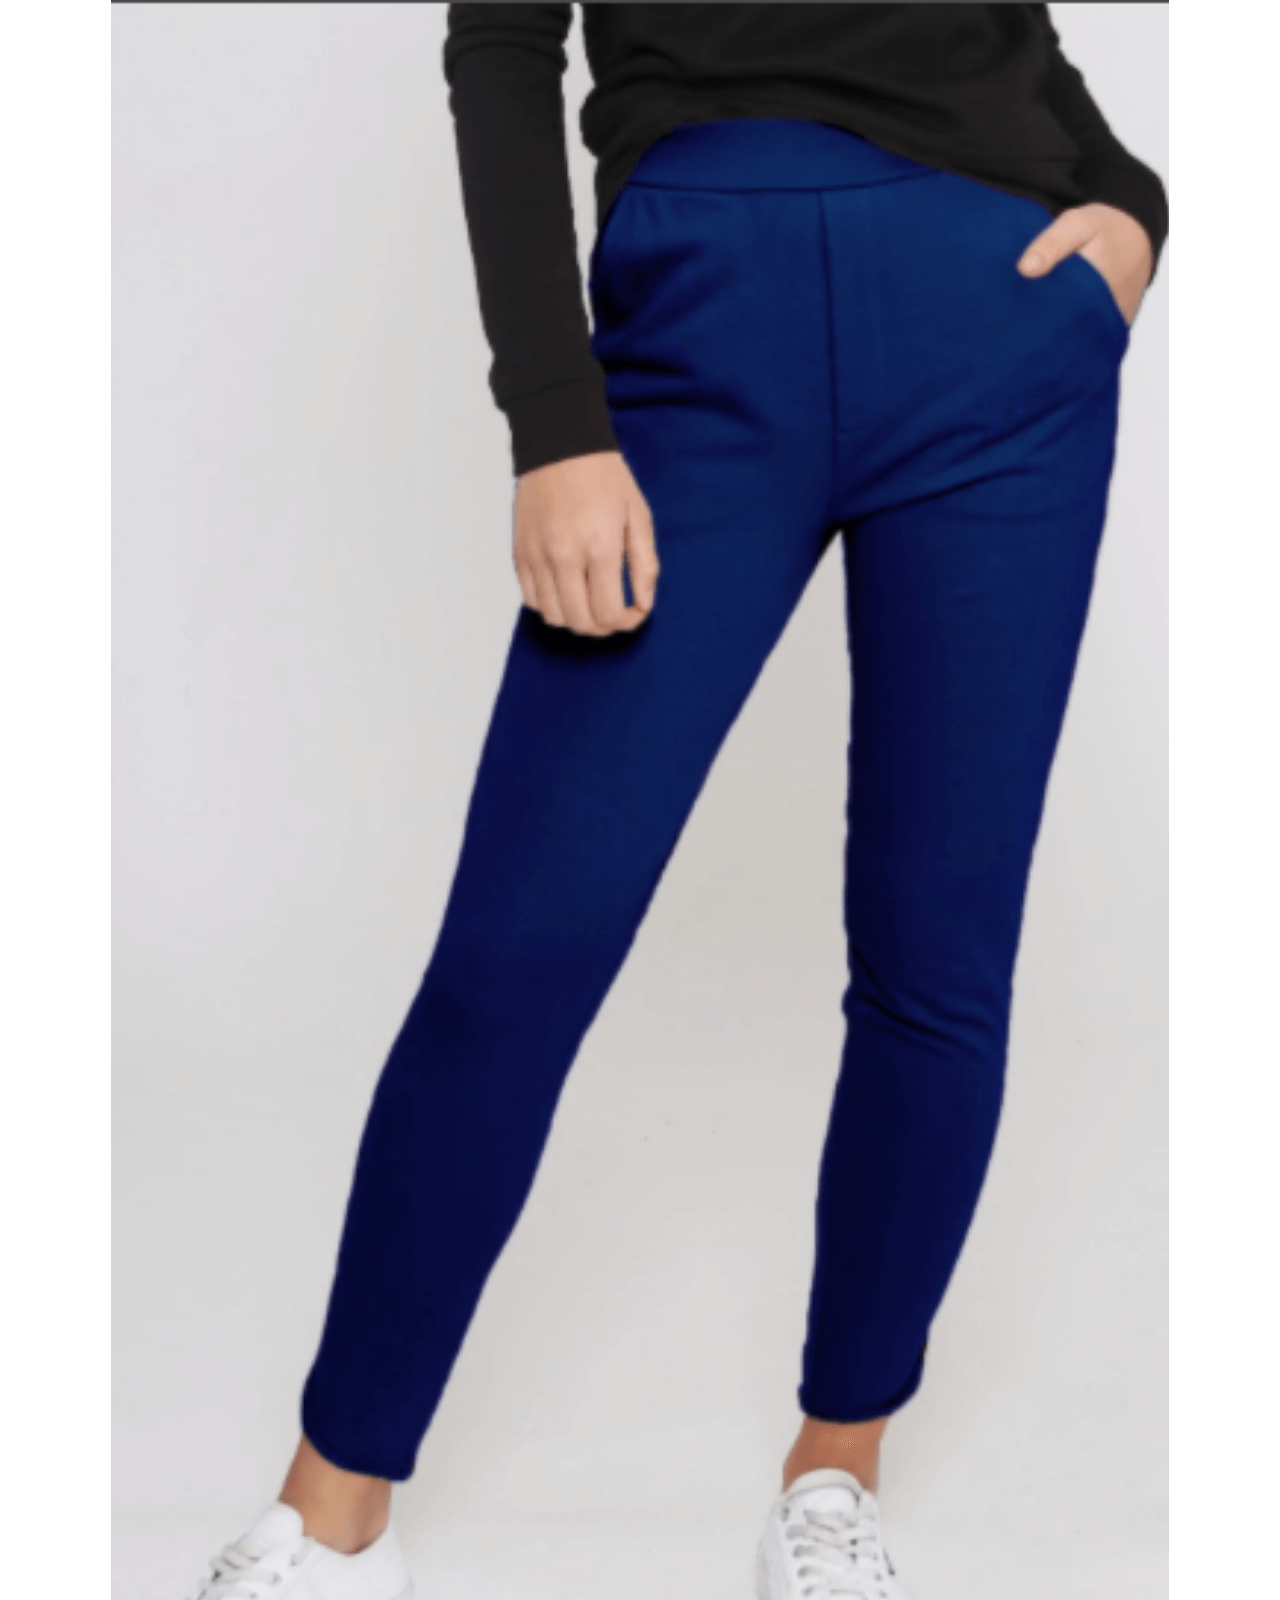 Leoni Luxe Lounge Pants - Navy